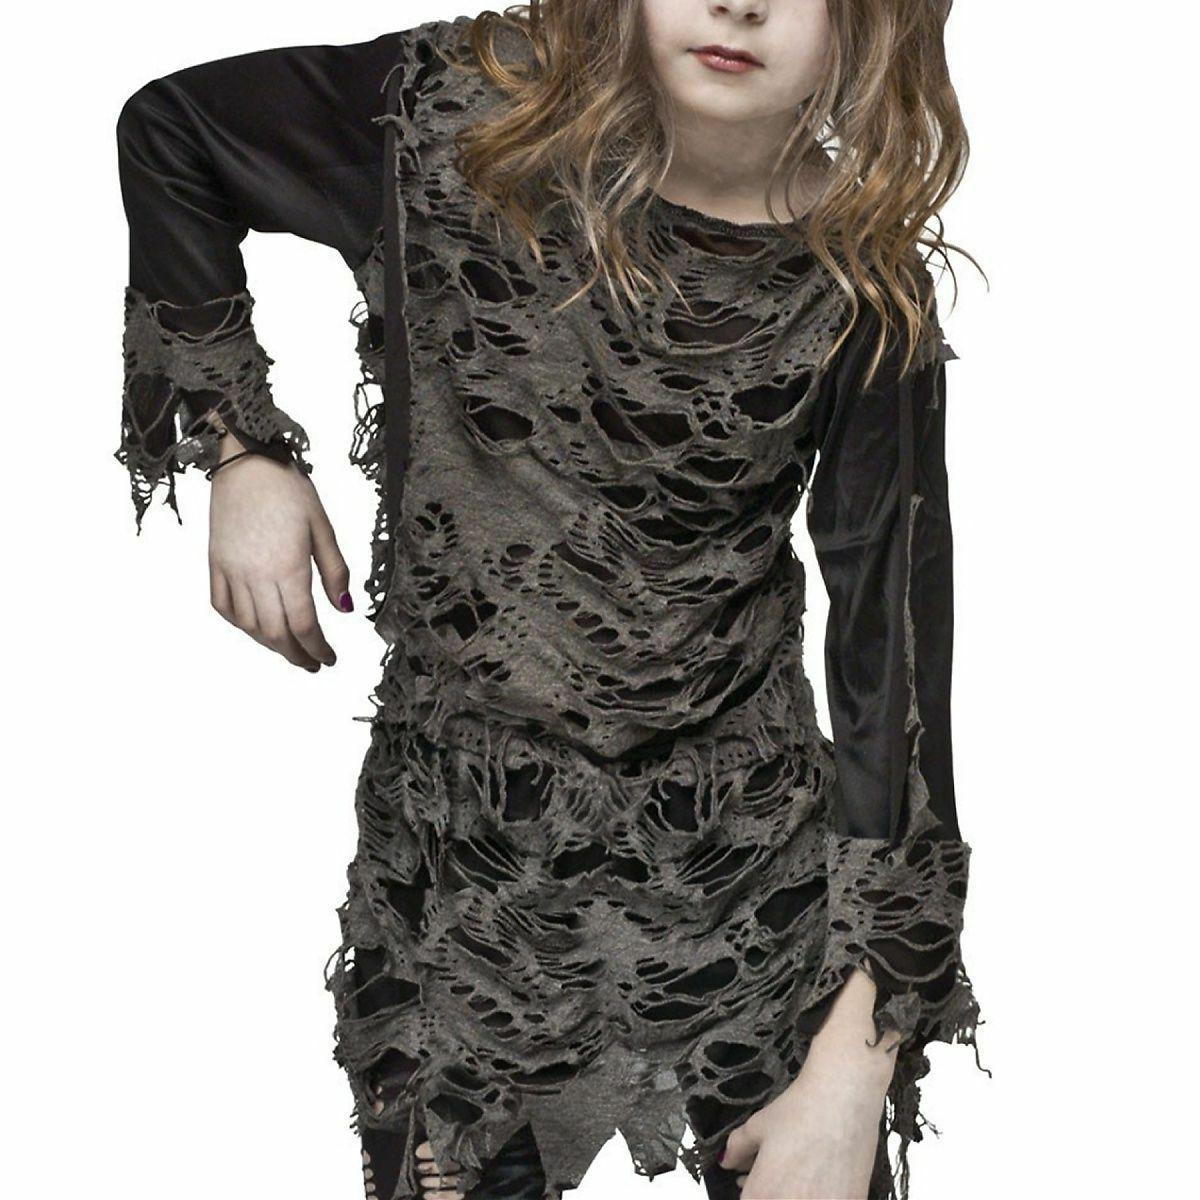 Walking Zombie for Girls 8-10 12-14 New by World